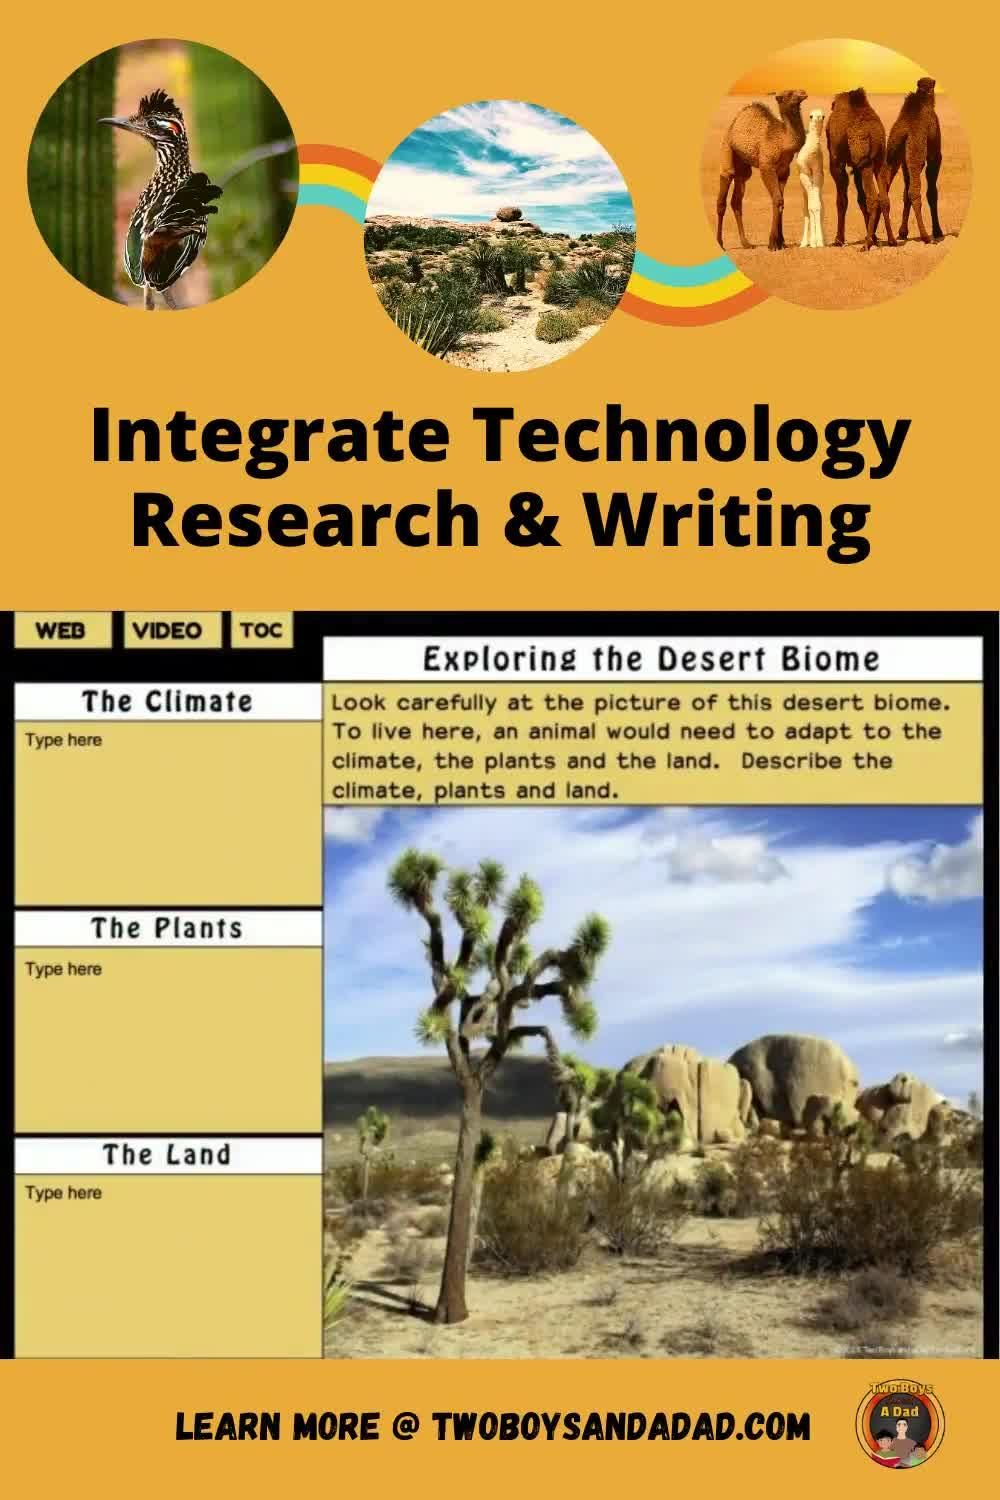 Integrating Technology With Research And Writing Video Video In 2020 Desert Animals Activities Desert Biome Digital Interactive Notebook